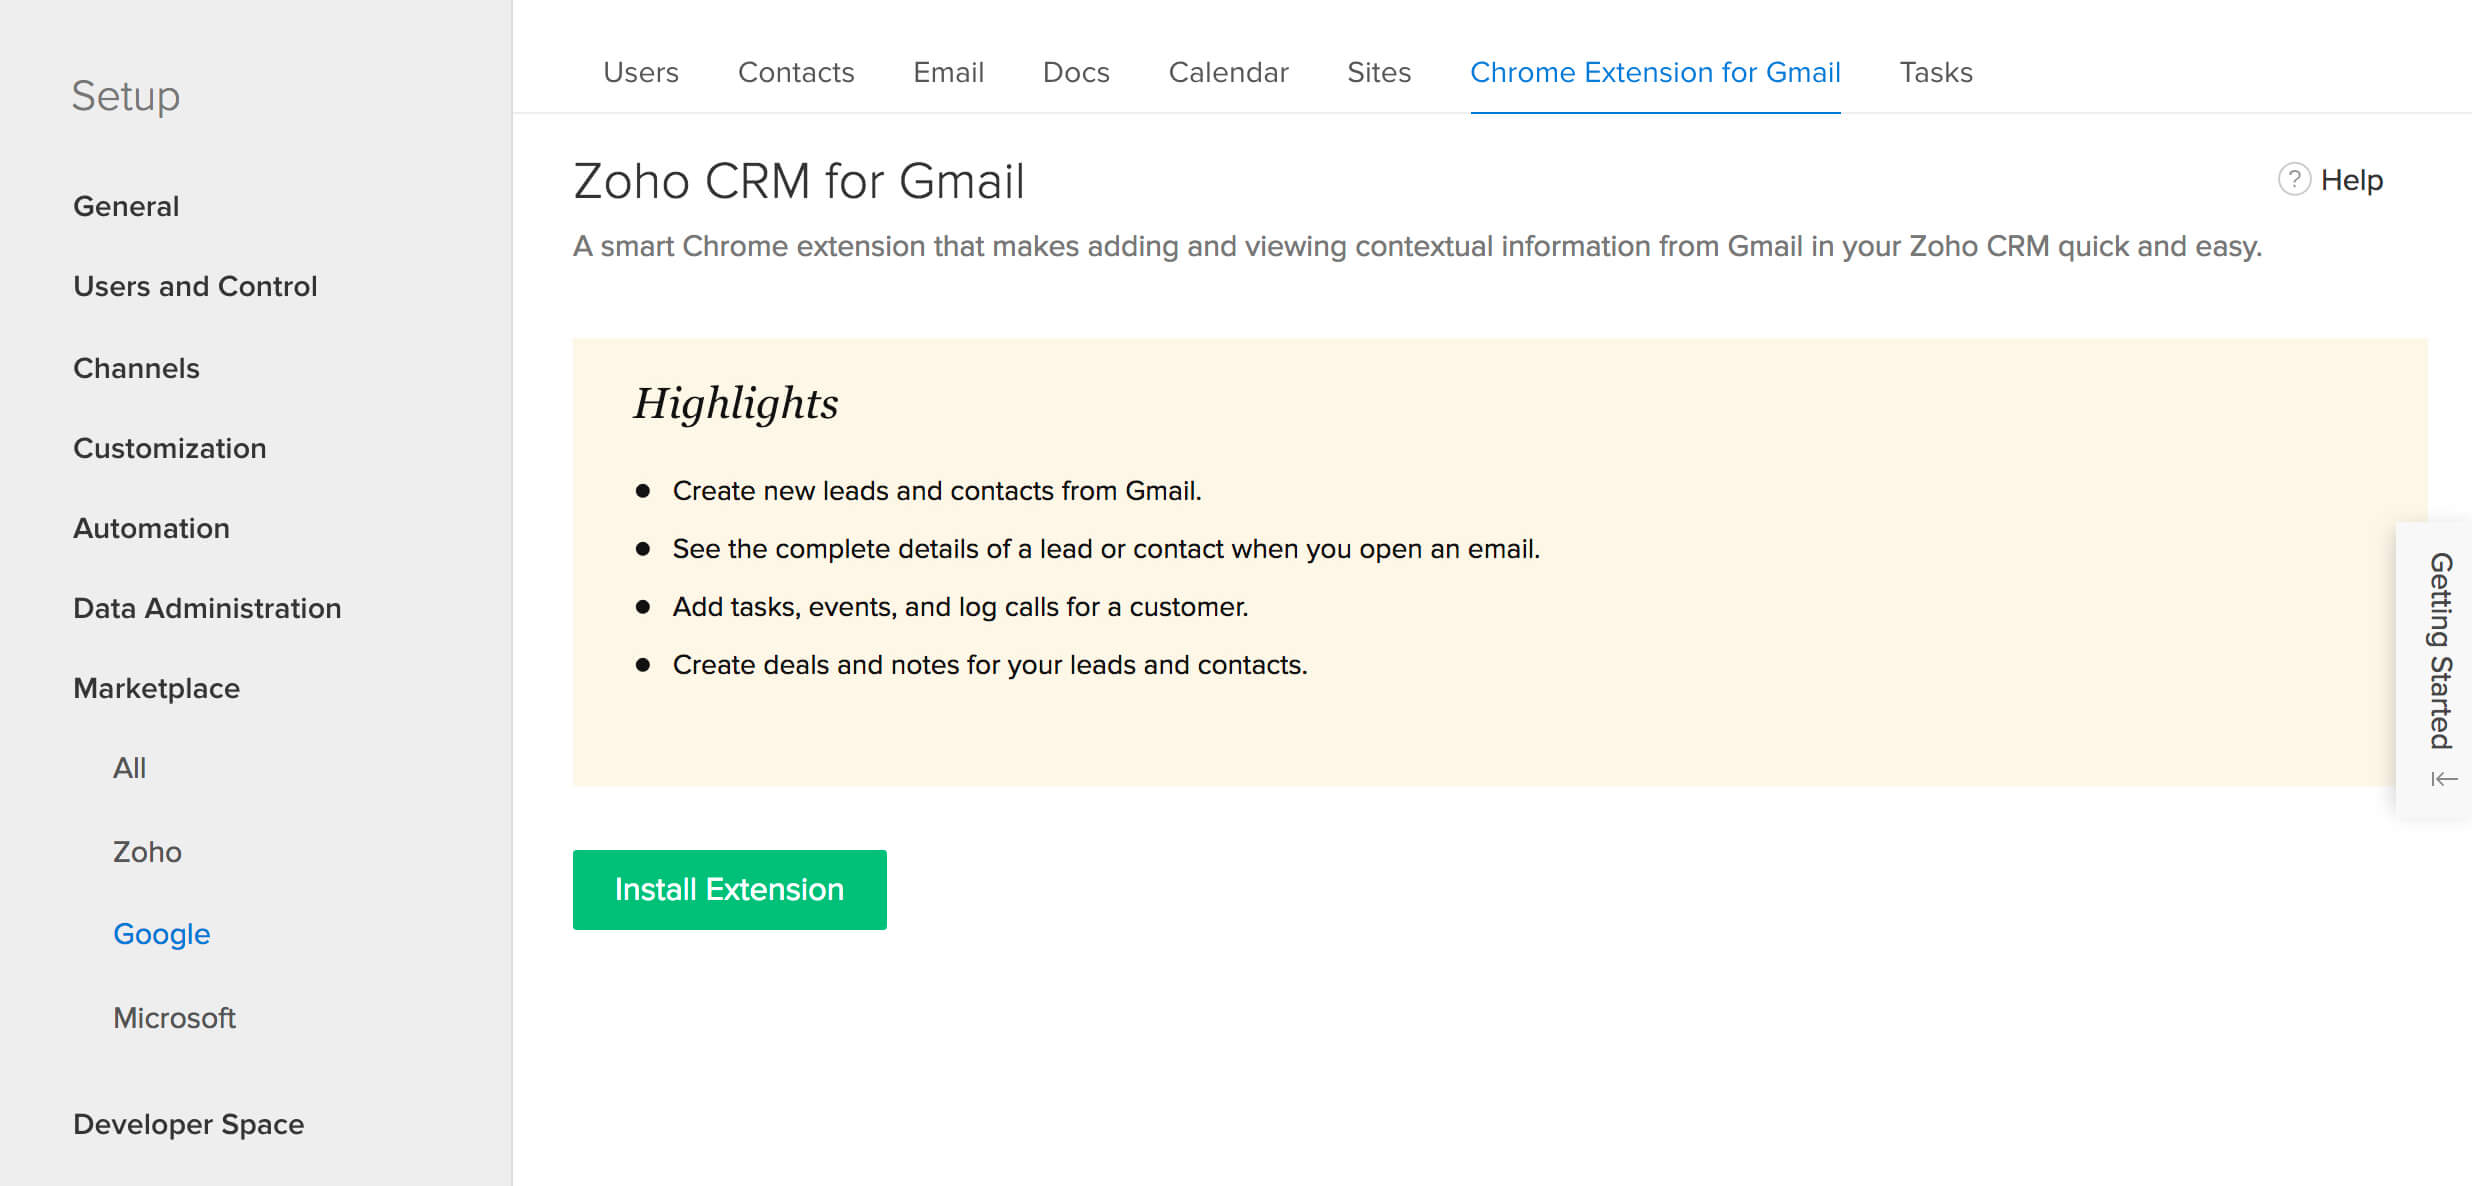 zoho crm life insurance template  Announcing Zoho CRM for Gmail